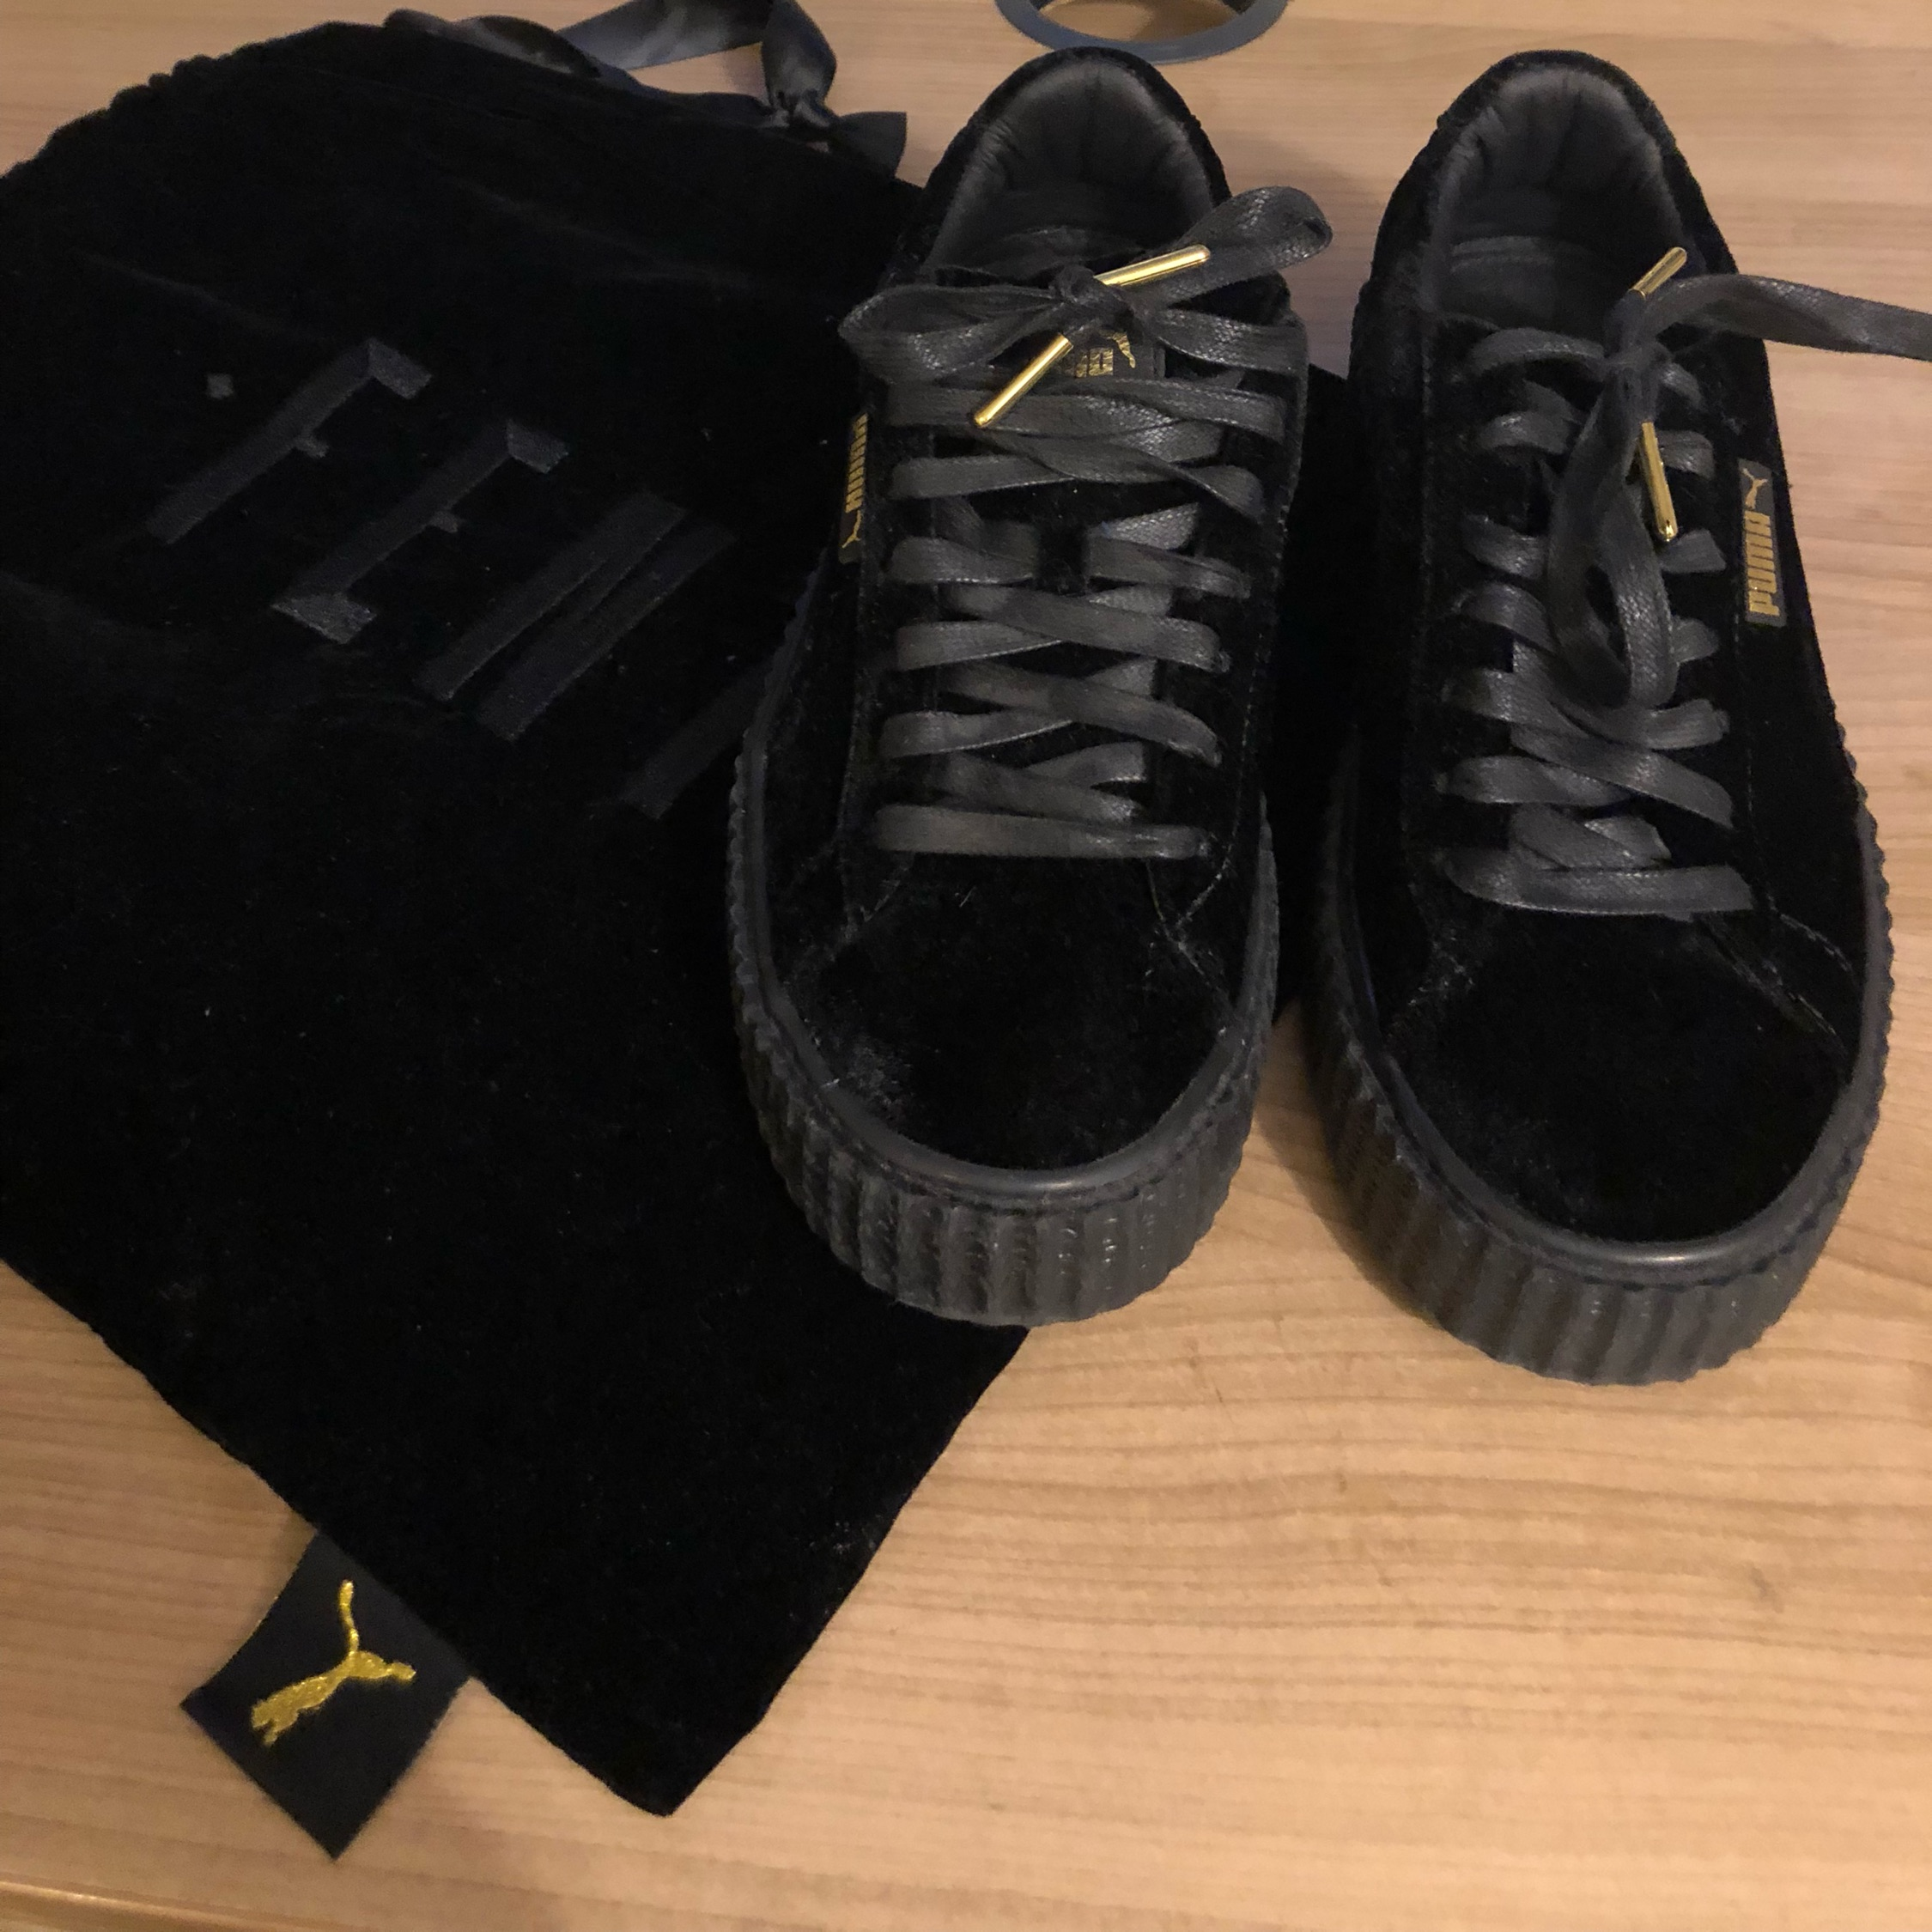 new product 5889f 8f34d Puma X Fenty - Velvet Black Creepers